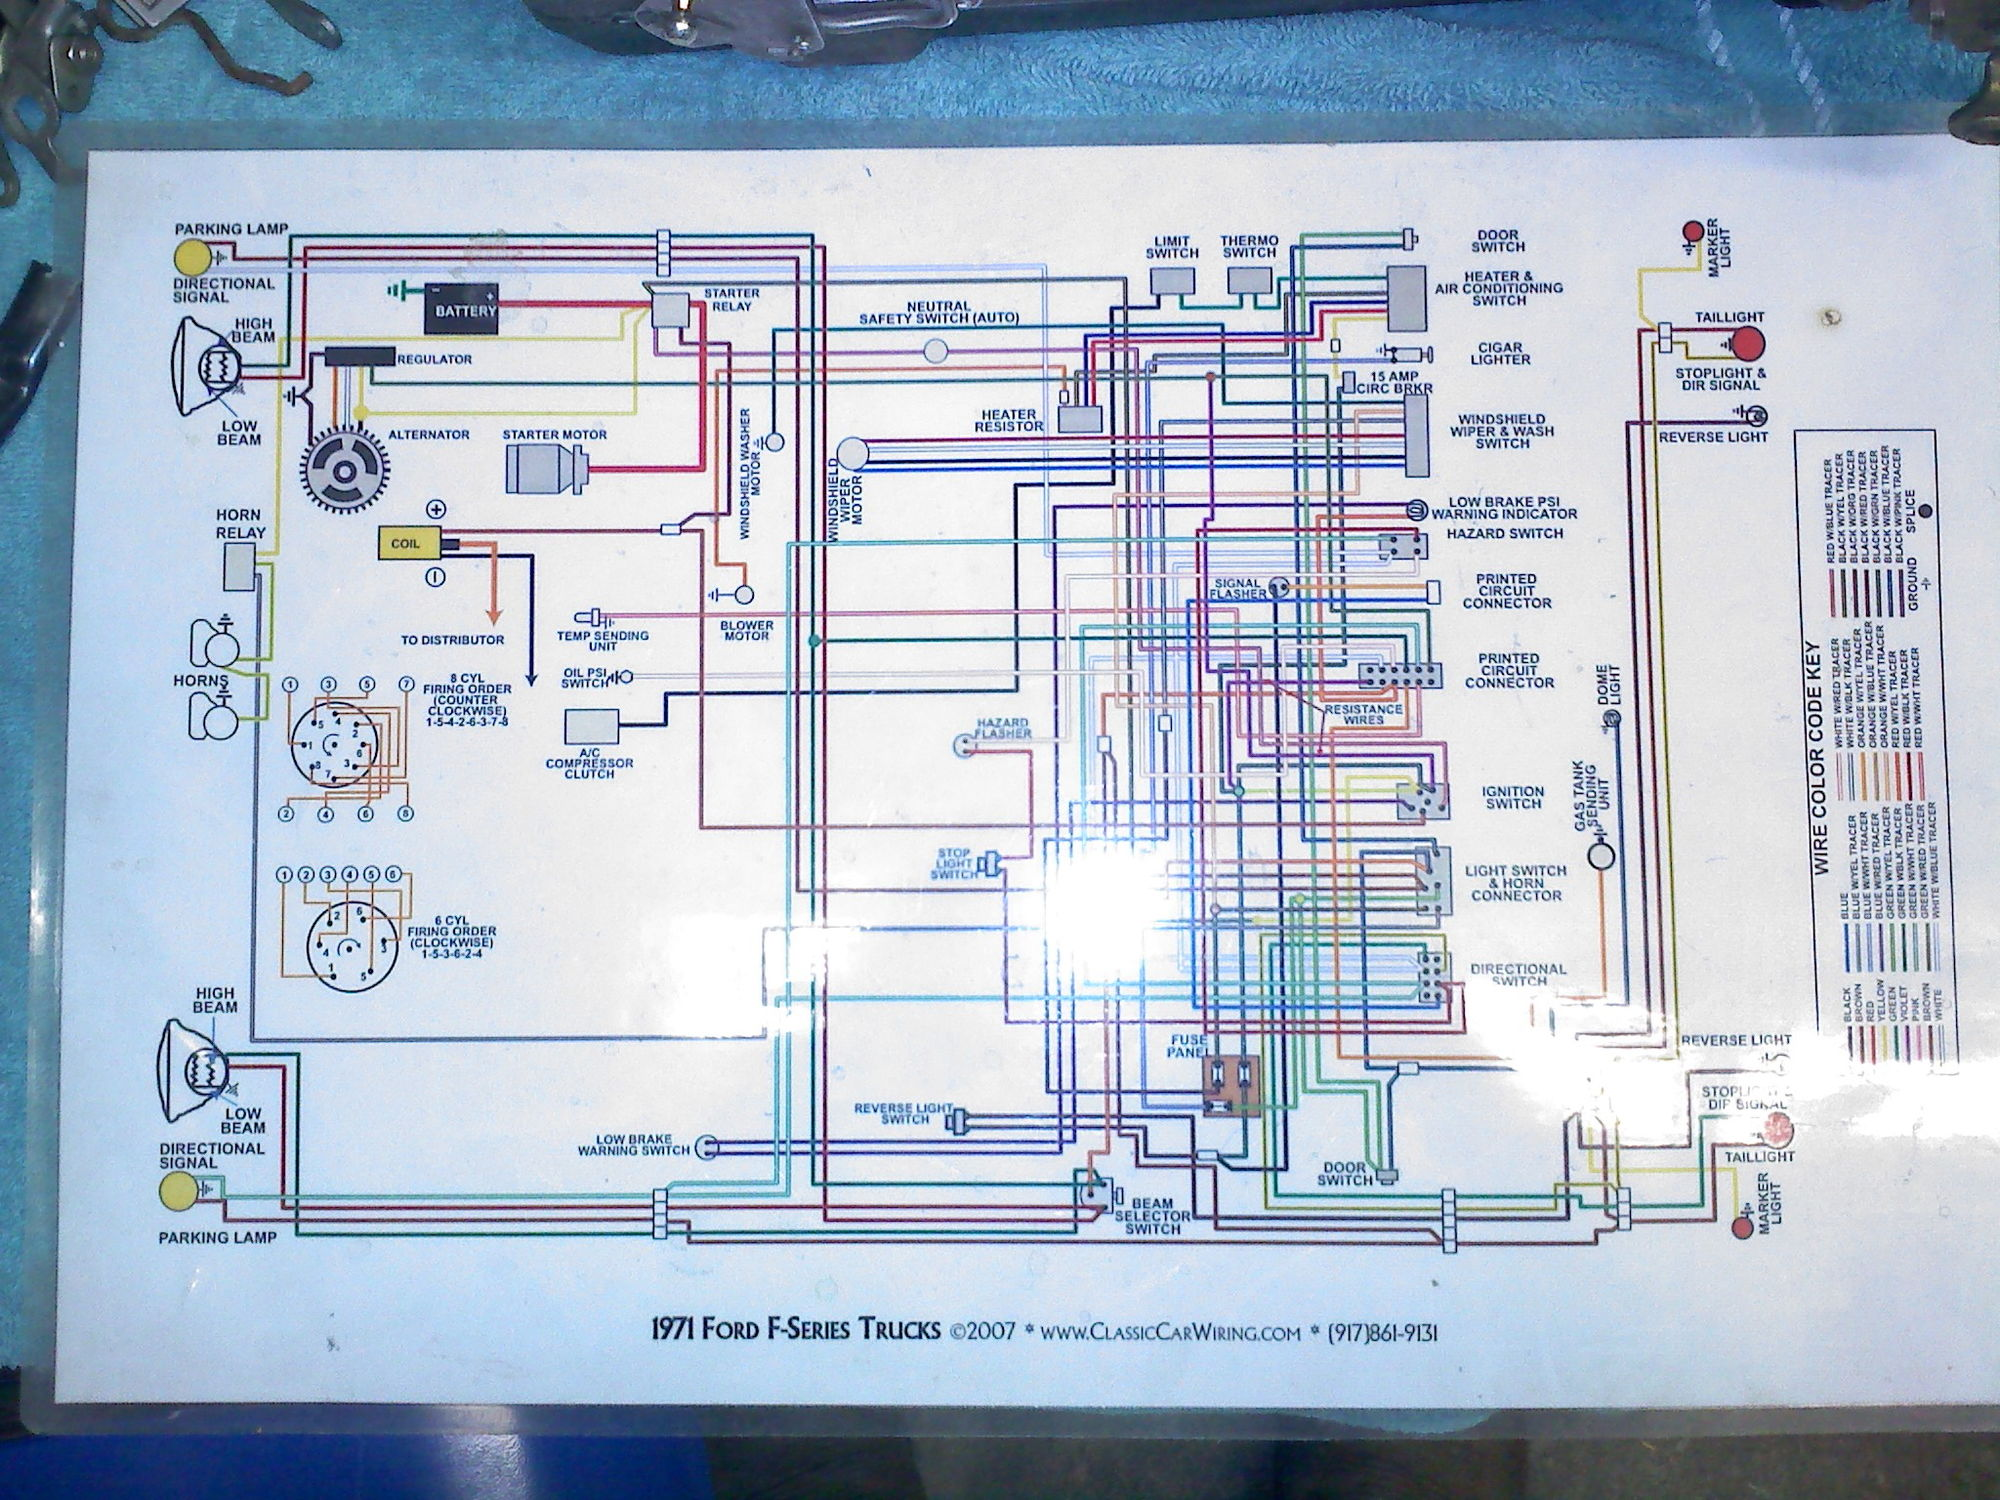 1971 Ford F100 Wiring Diagram